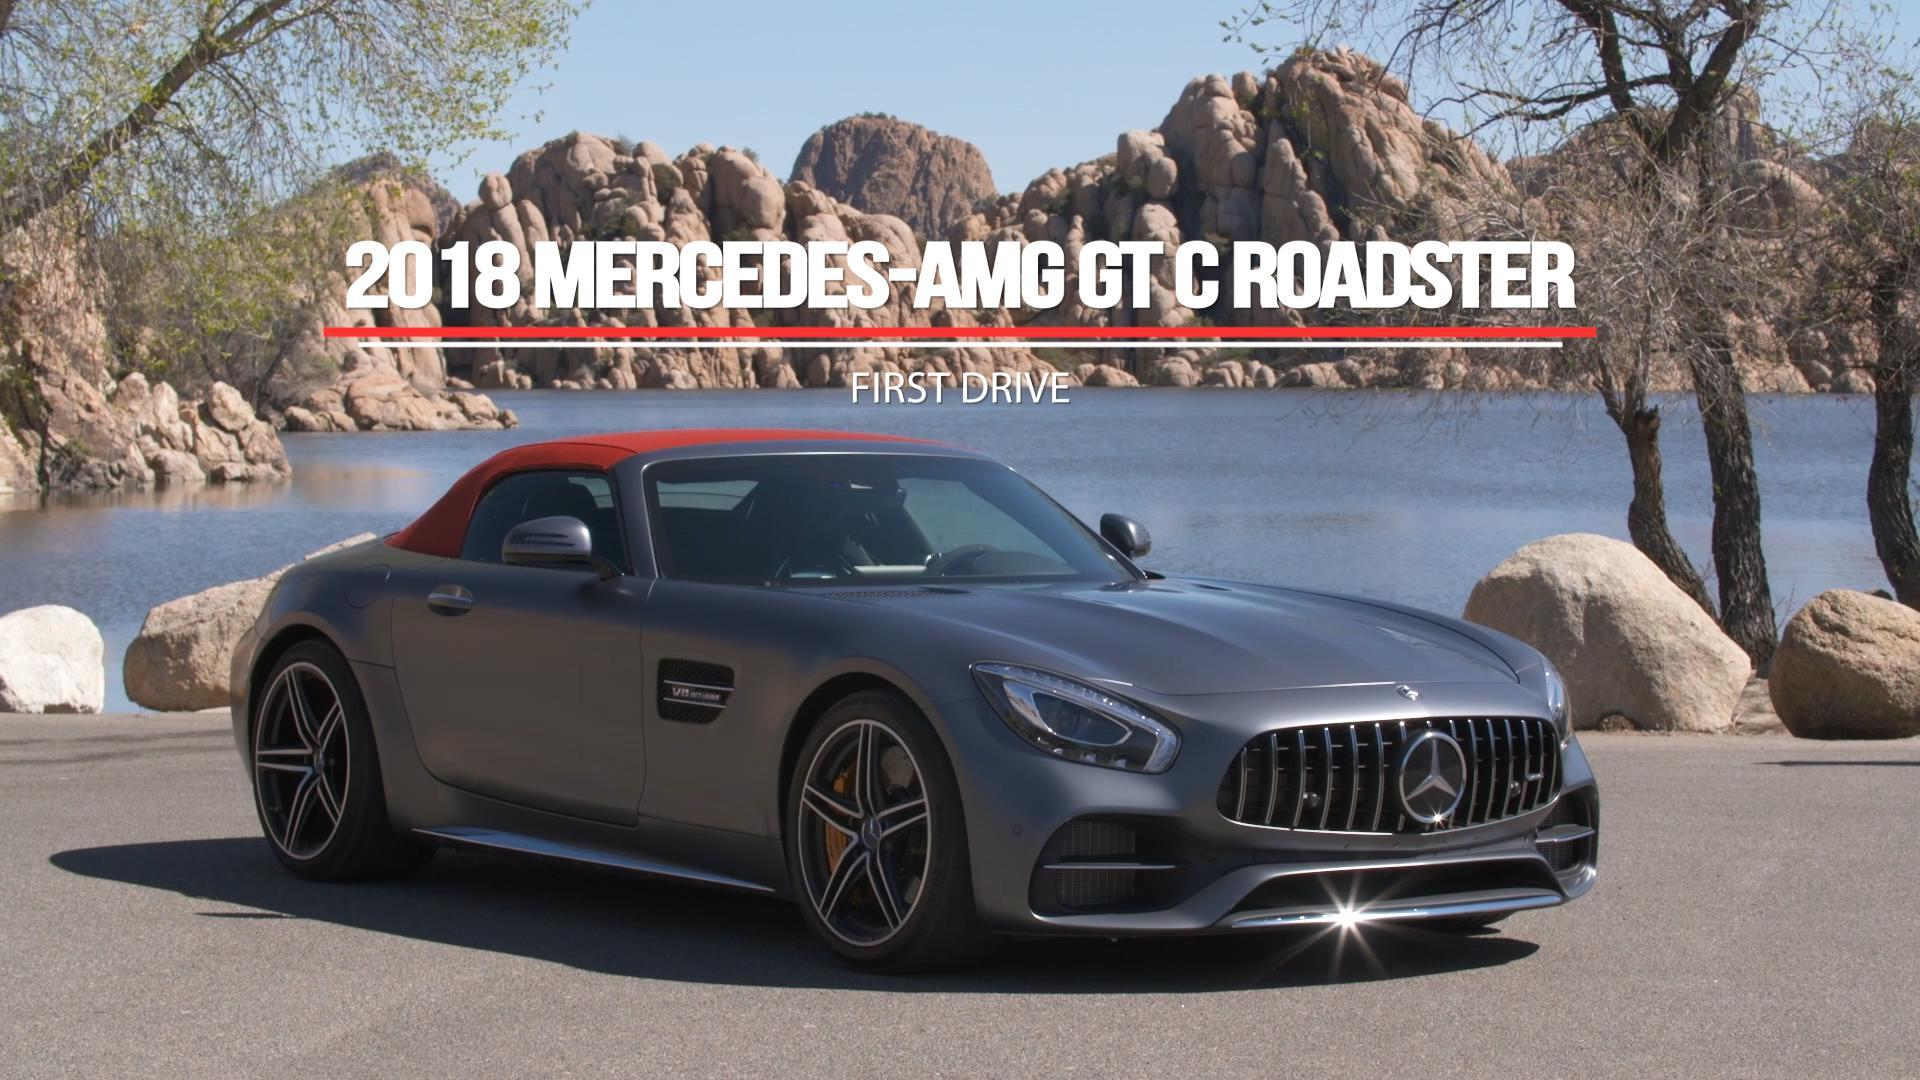 Mercedes Amg Gt C Roadster 2017 Vicious Beauty 2018 Mercedes Amg Gt C Roadster First Drive